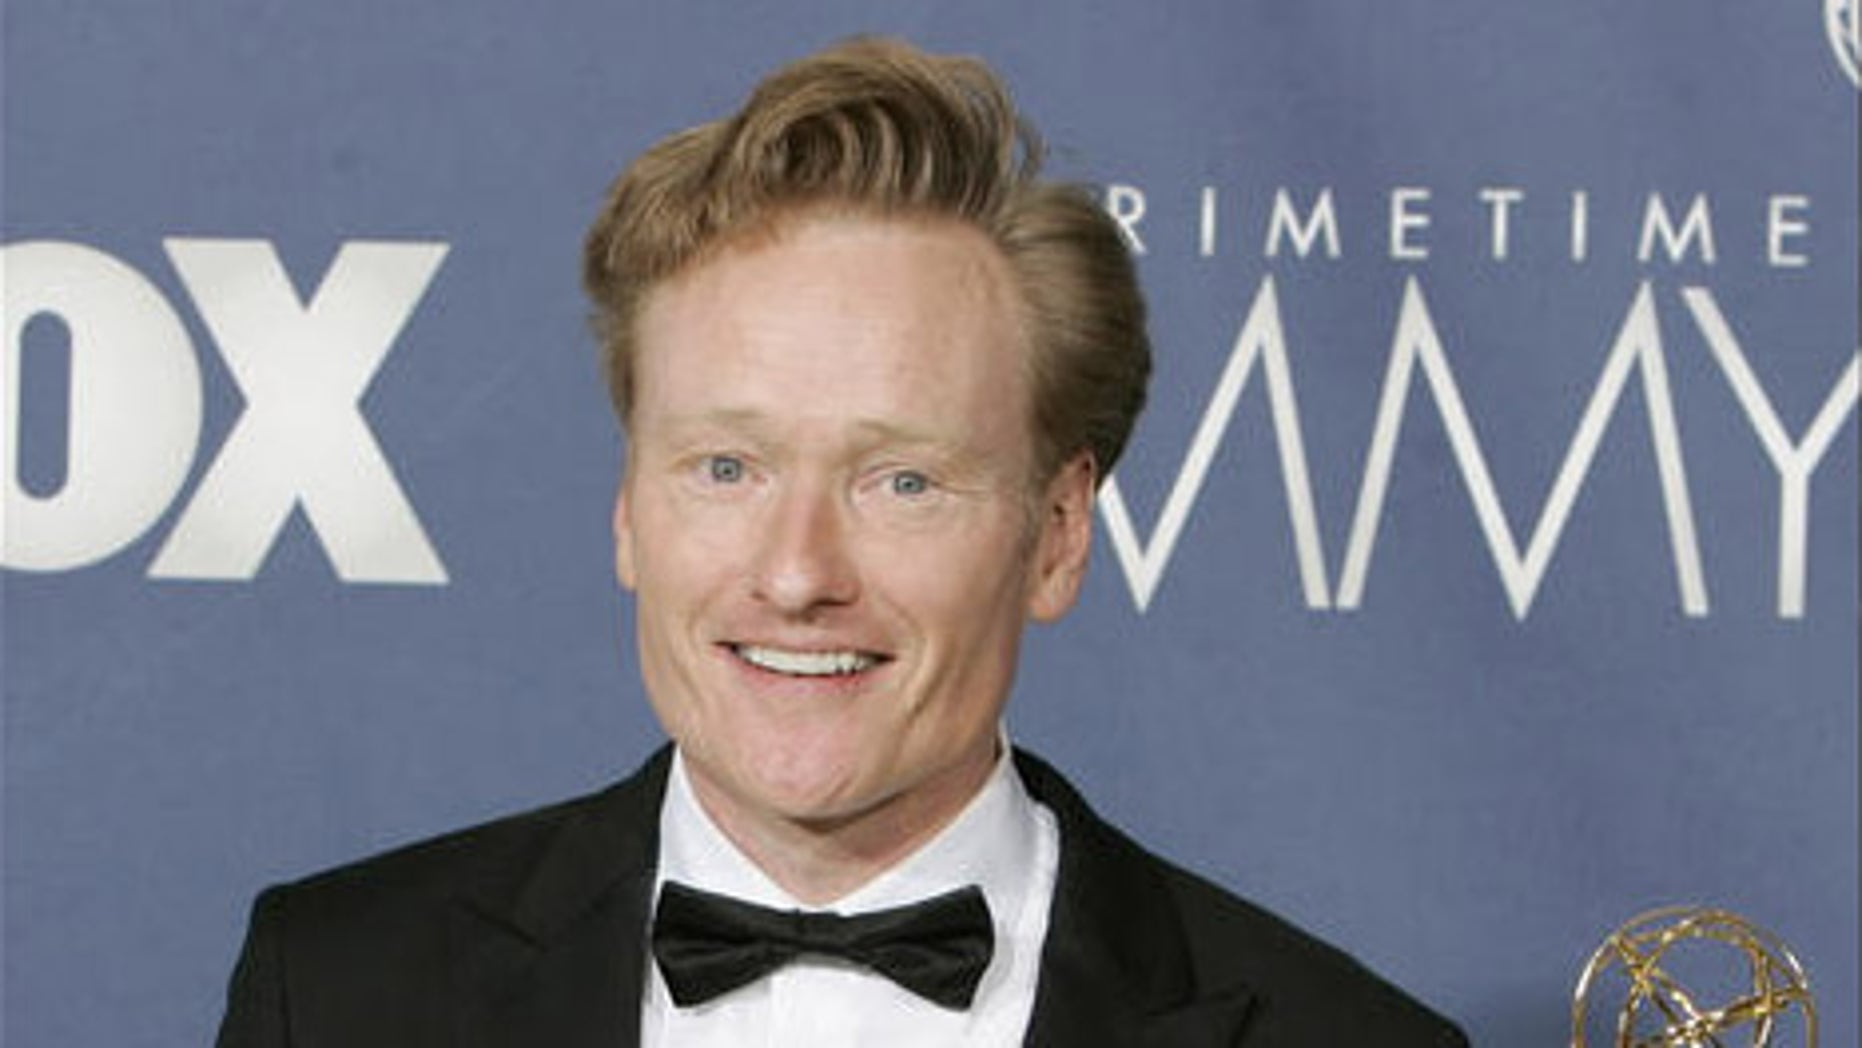 """Conan O'Brien holds the awards for outstanding writing for a variety, music or comedy program for """"Late Night with Conan O'Brien"""" the 59th Primetime Emmy Awards Sunday, Sept. 16, 2007, in Los Angeles.  (AP Photo/Chris Carlson)"""